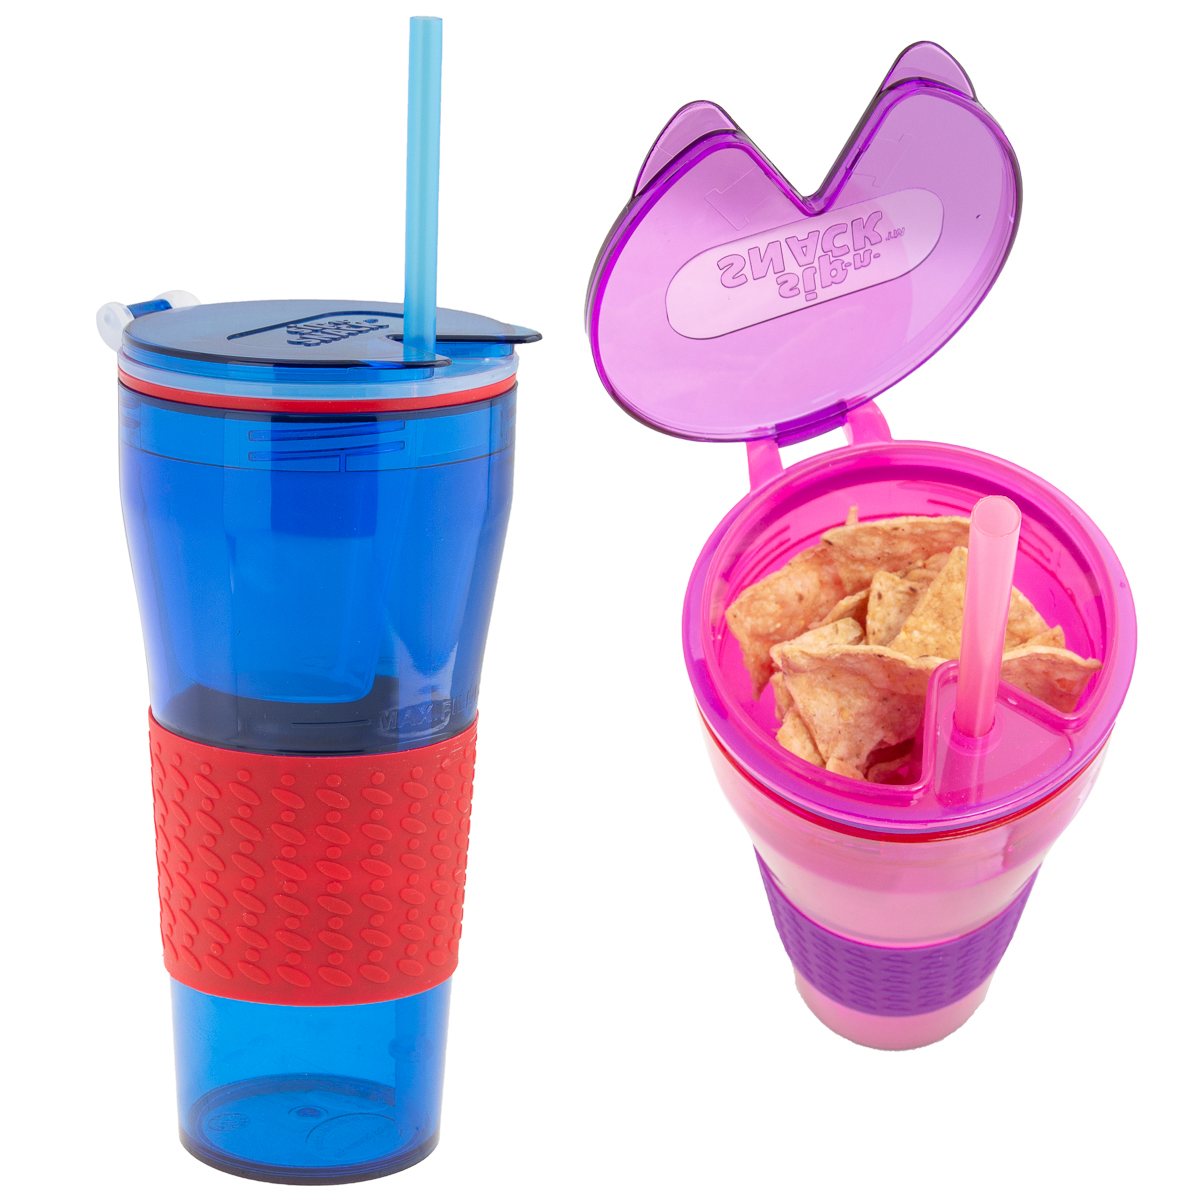 Sip-N-Snack (2 Pack) 2-in-1 Kids Cups BPA-Free With Straws & Reusable Snack Container With Lids Snack Cup for... by Sip-N-Snack